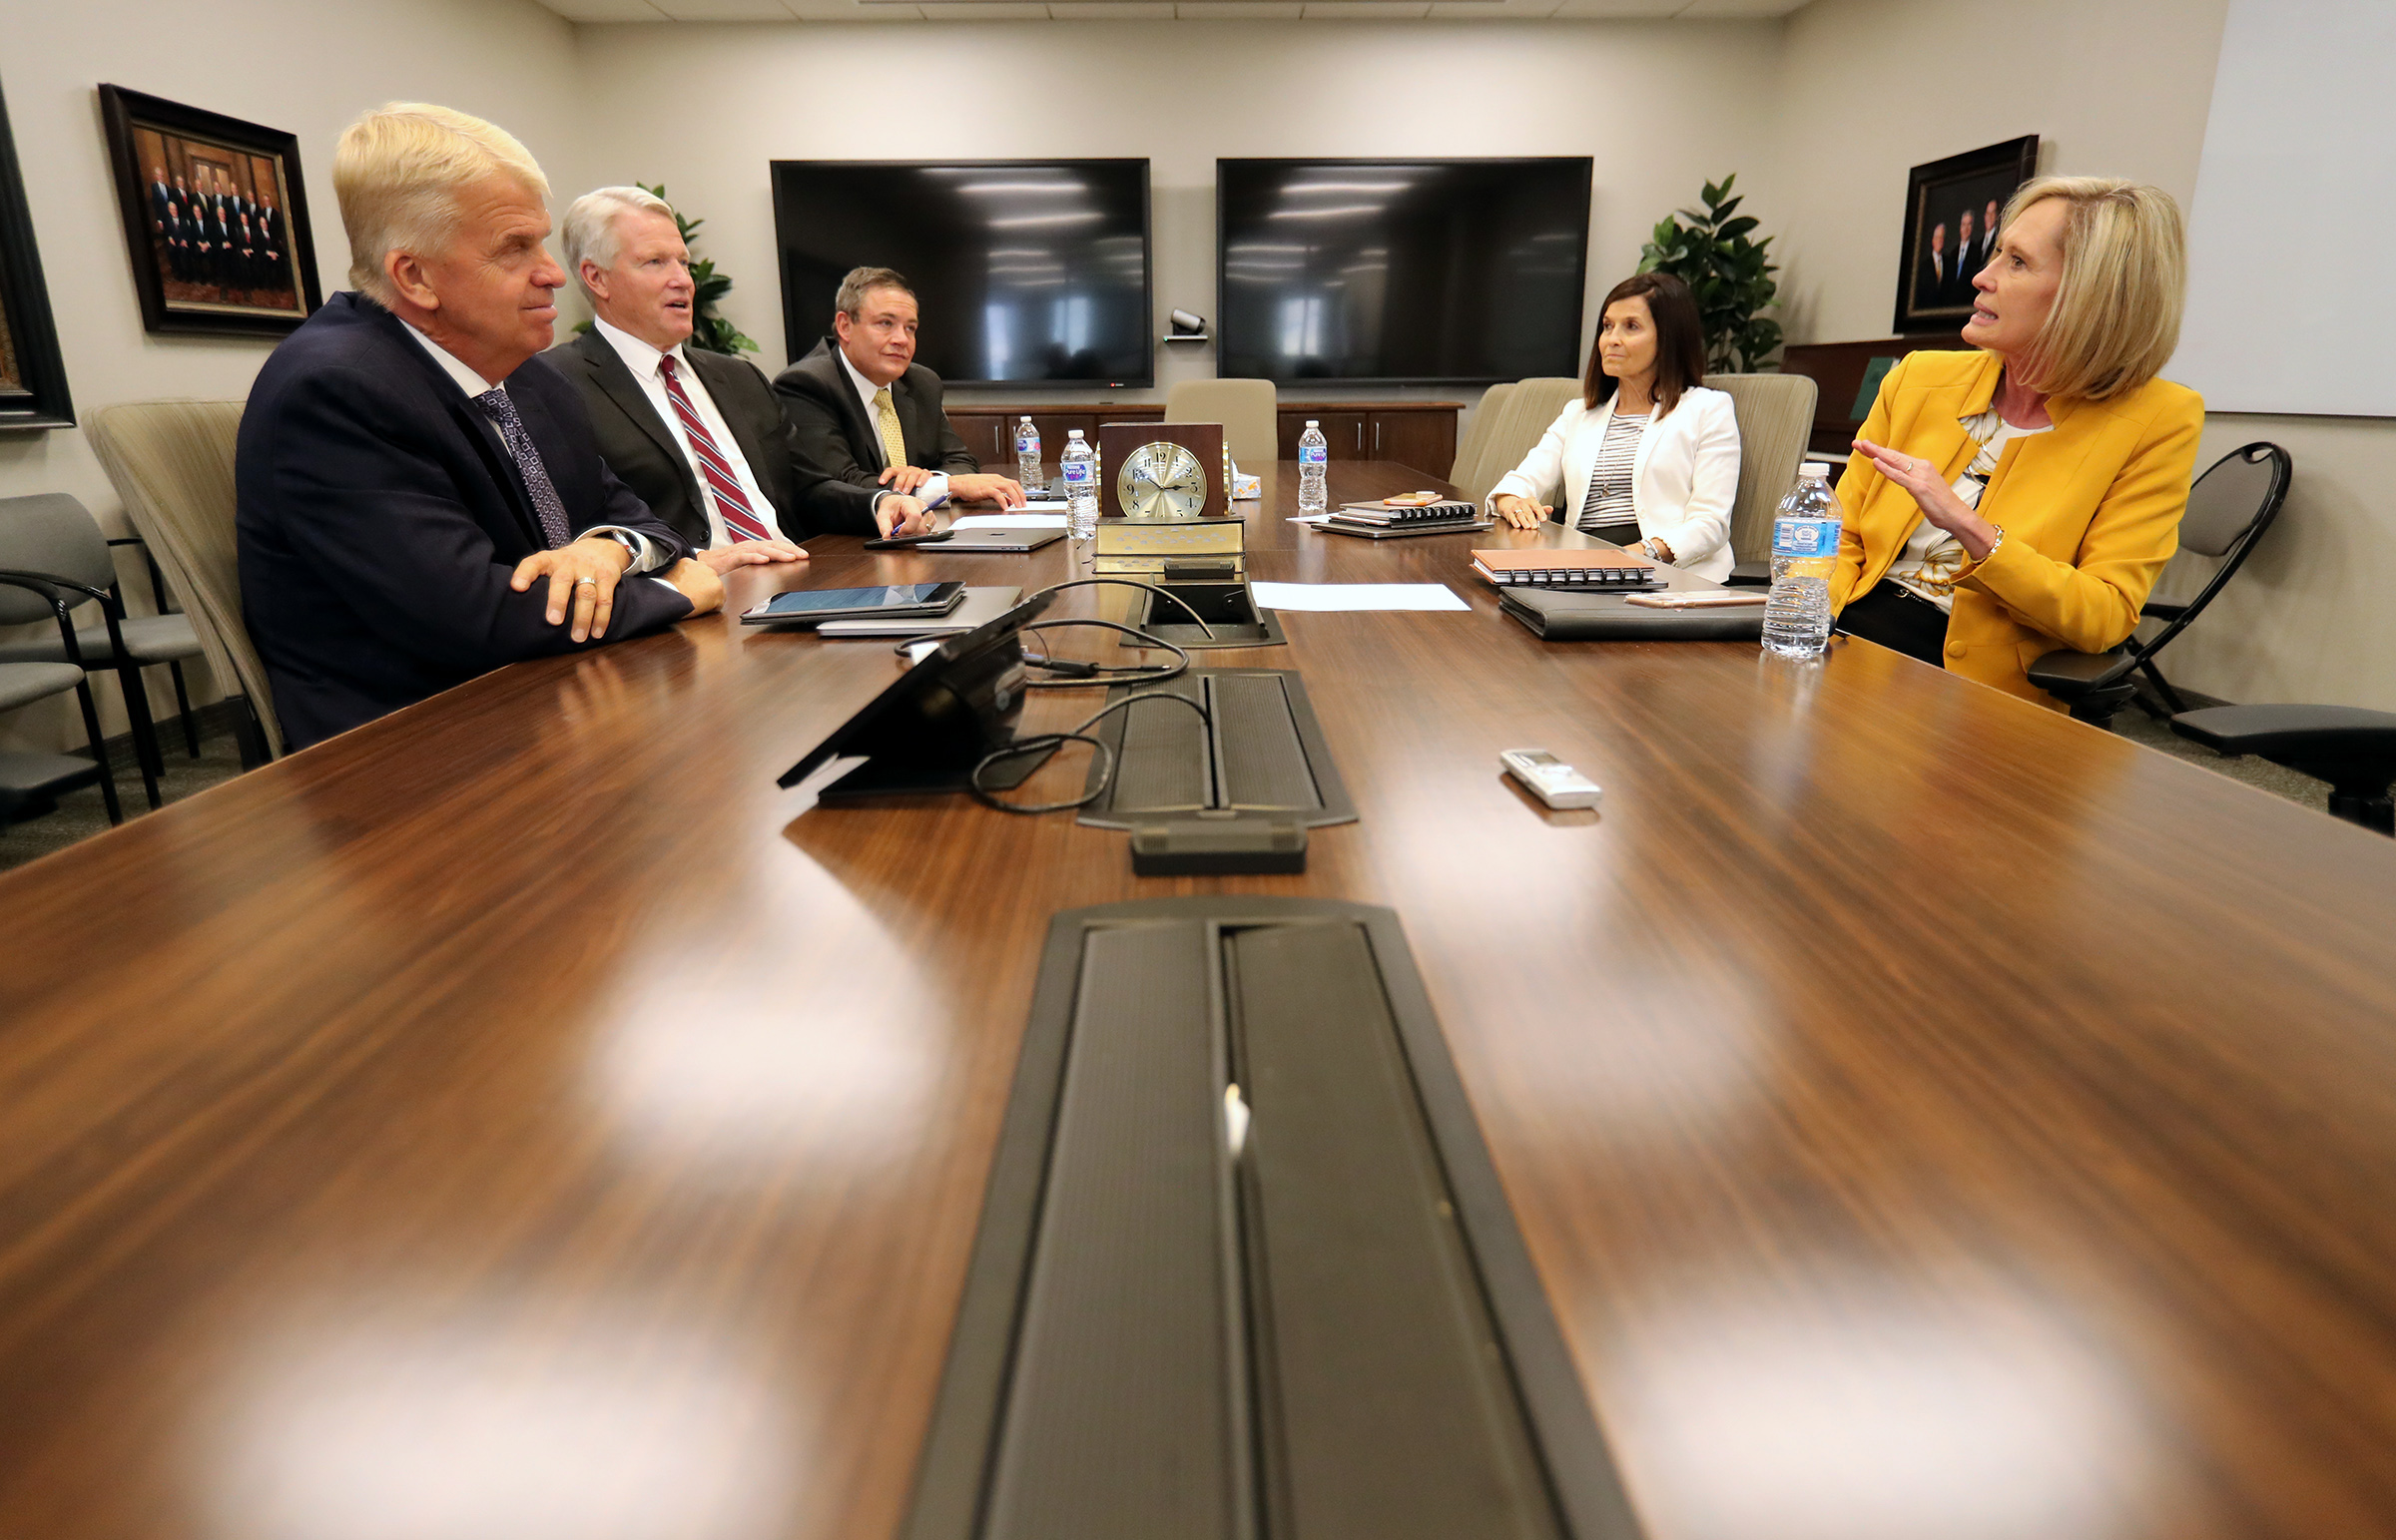 From left, Brother Stephen W. Owen, Brother Douglas D. Holmes and Brother M. Joseph Brough of the Young Men general presidency, along with Sisters Bonnie H. Cordon and Becky Craven of the Young Women general presidency gather on Tuesday, Aug. 20, 2019, at the Church Office Building in Salt Lake City to discuss what the 2020 youth theme means and how it connects to the forthcoming Children and Youth program.